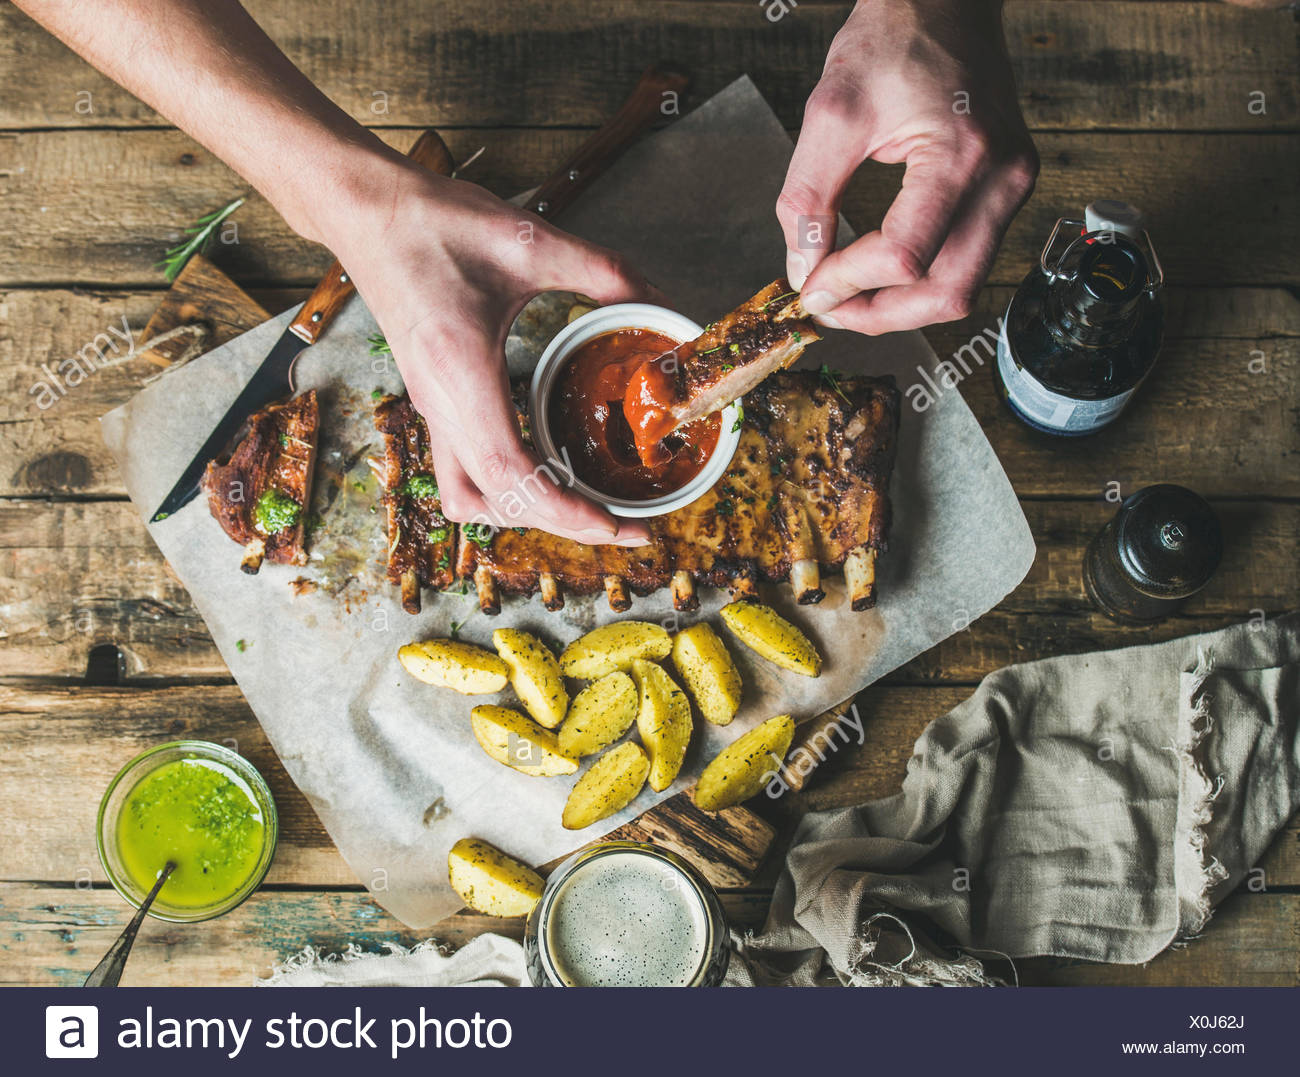 Man eating roasted pork ribs with potato pieces, garlic, rosemary and green herb sauce on rustic wooden table. Man' s hands dipp - Stock Image